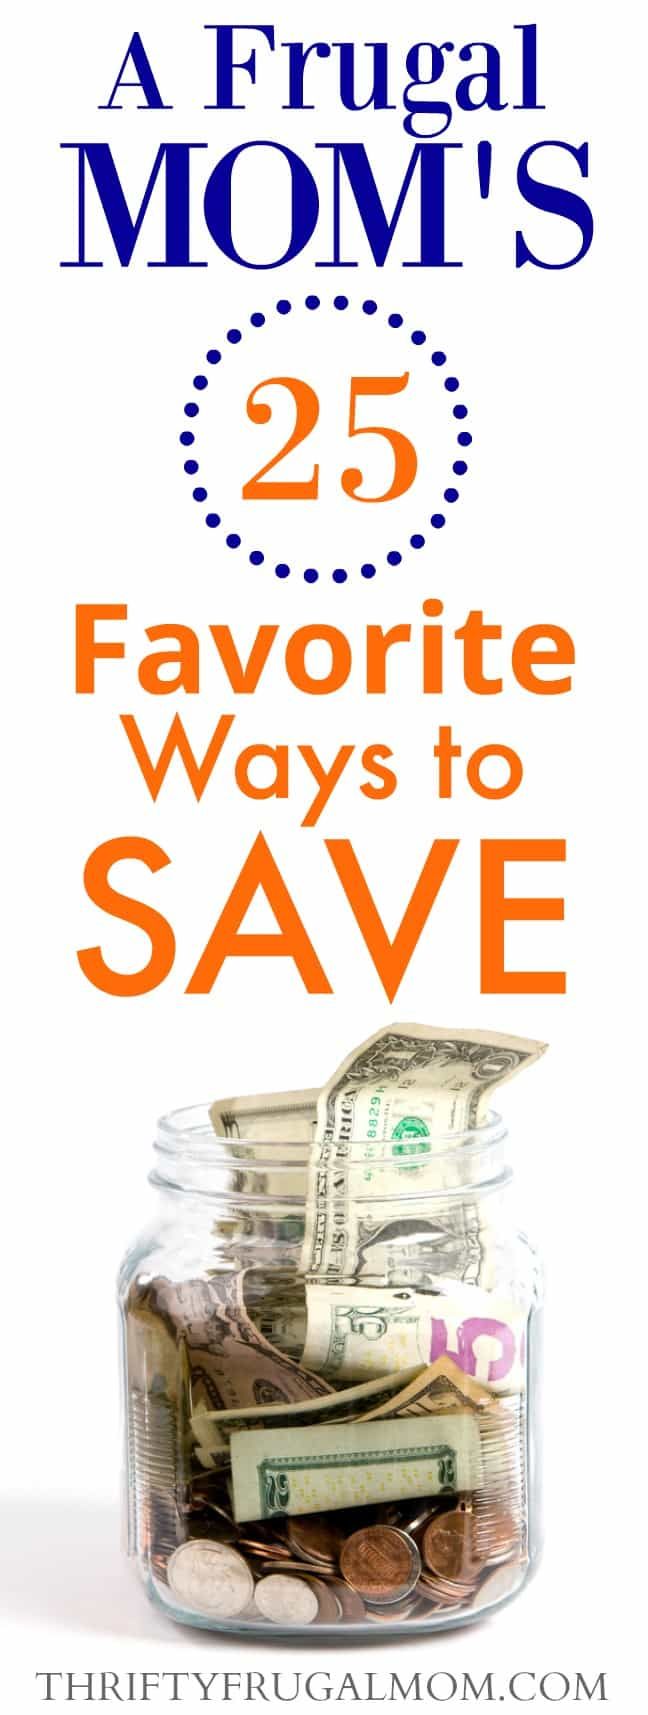 Wow!  What a great list of easy ways to save!  This frugal mom knows what she's talking about, for sure.